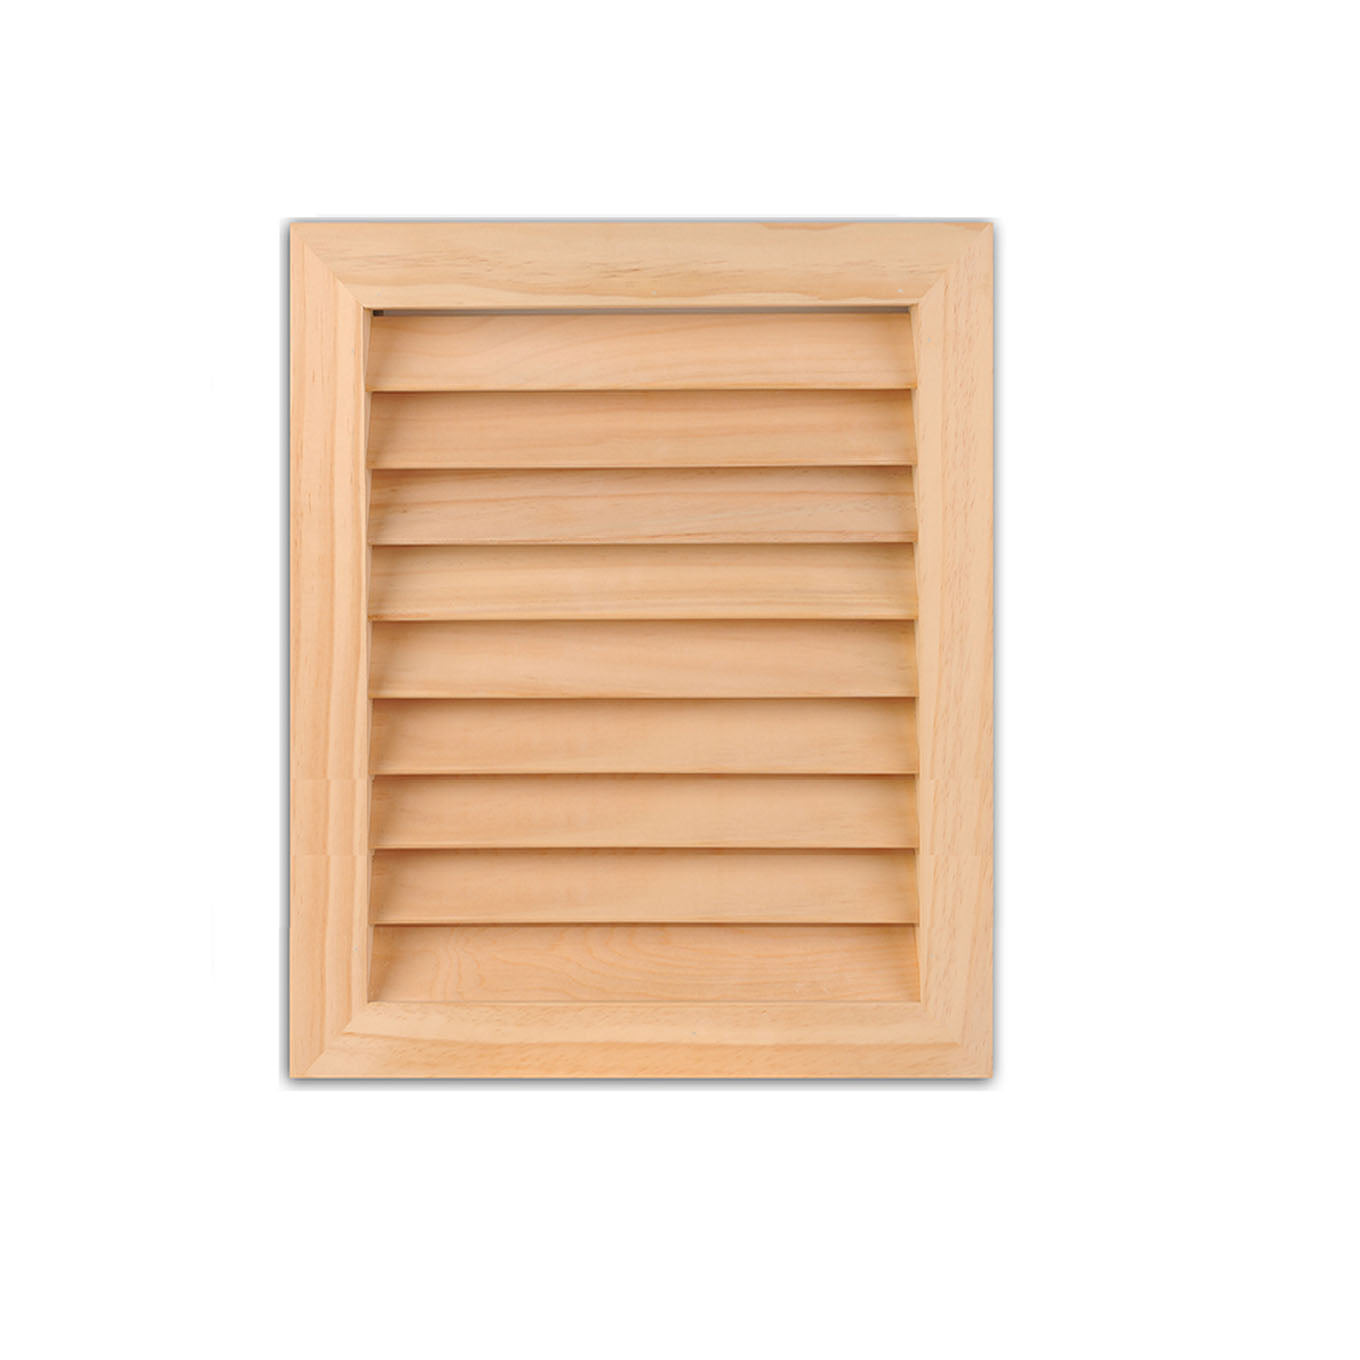 Decorative Wood A/C Return Grilles - Ready to paint to match your walls or trim.